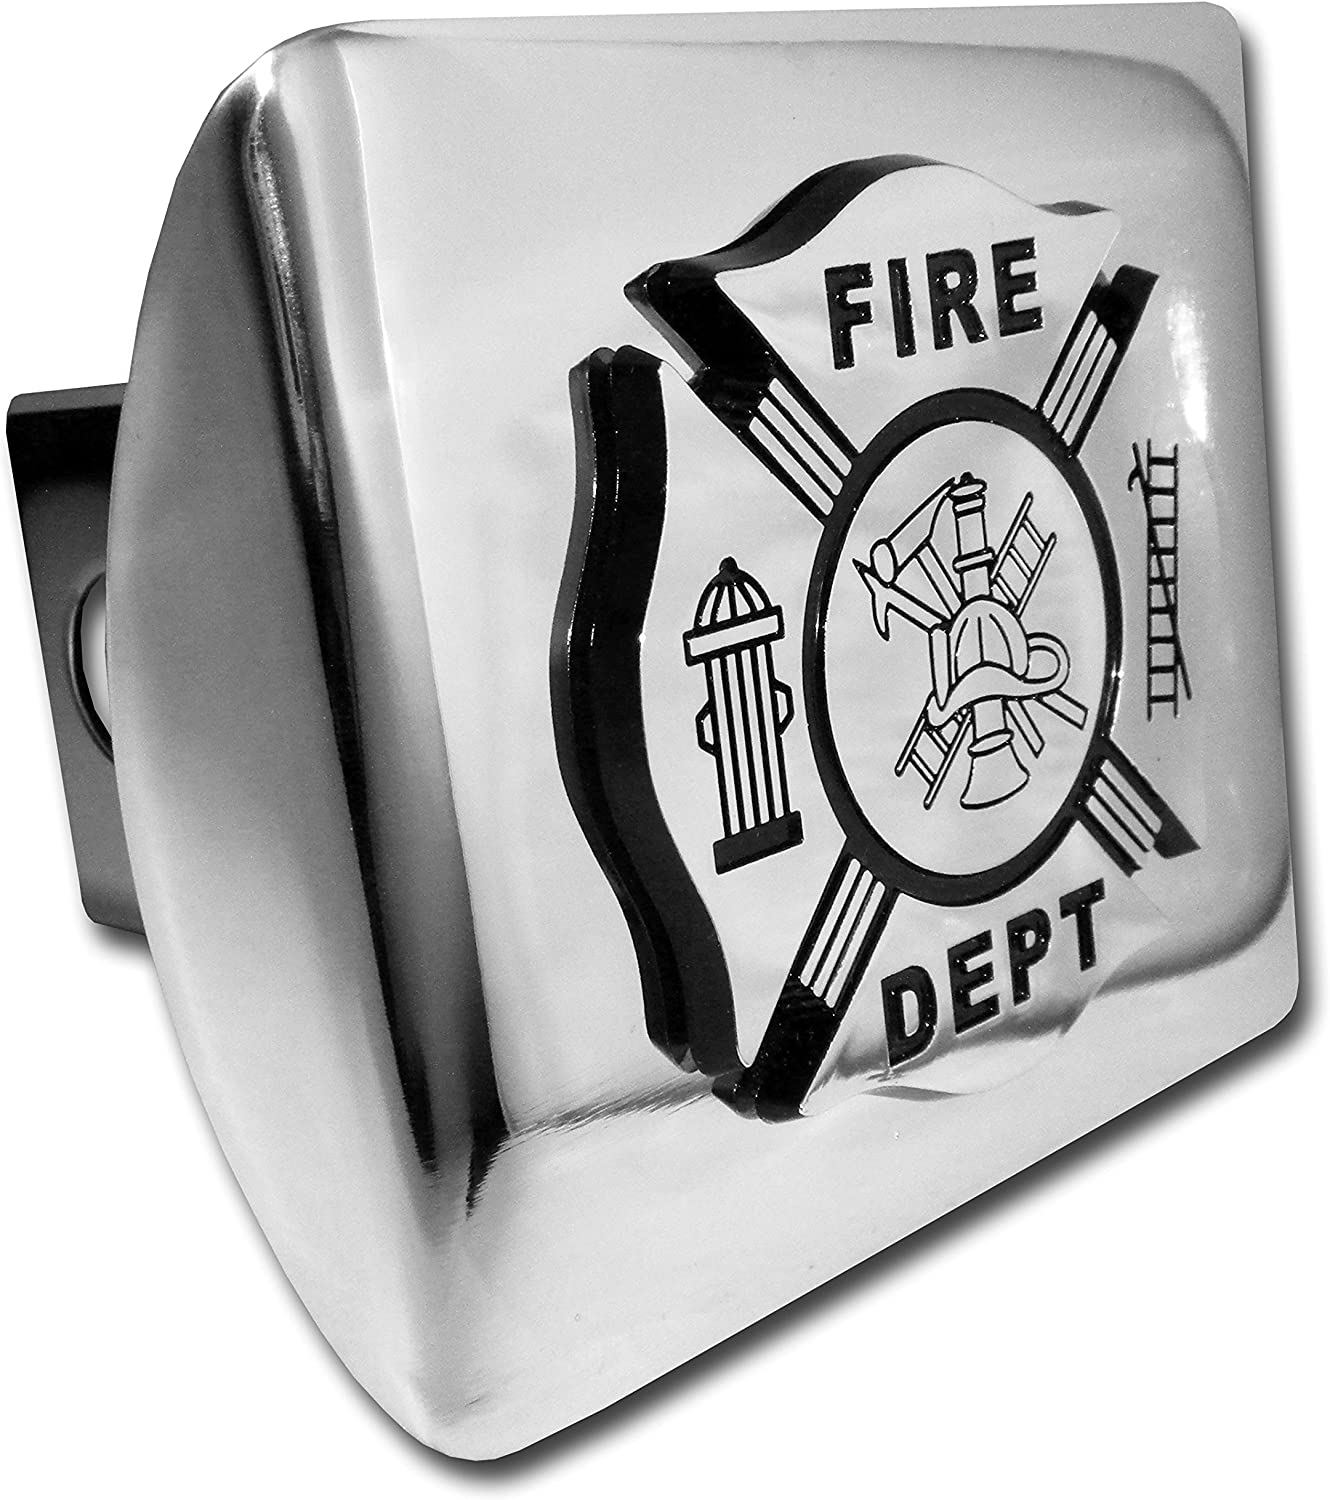 All Metal Shiny Chrome Hitch Cover Firefighter Chrome /& Black